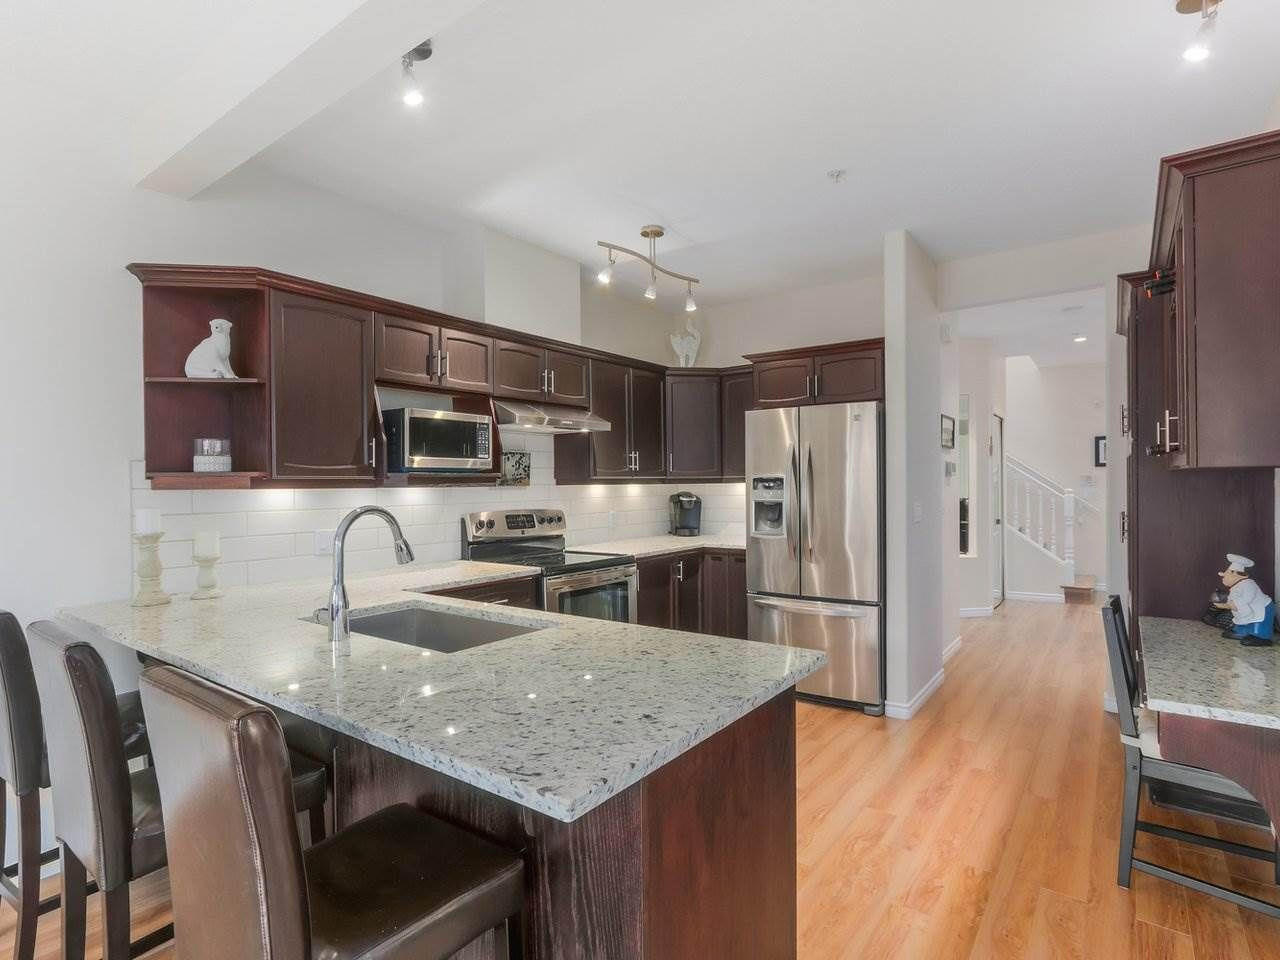 """Photo 4: Photos: 21 998 RIVERSIDE Drive in Port Coquitlam: Riverwood Townhouse for sale in """"PARKSIDE PLACE"""" : MLS®# R2371728"""